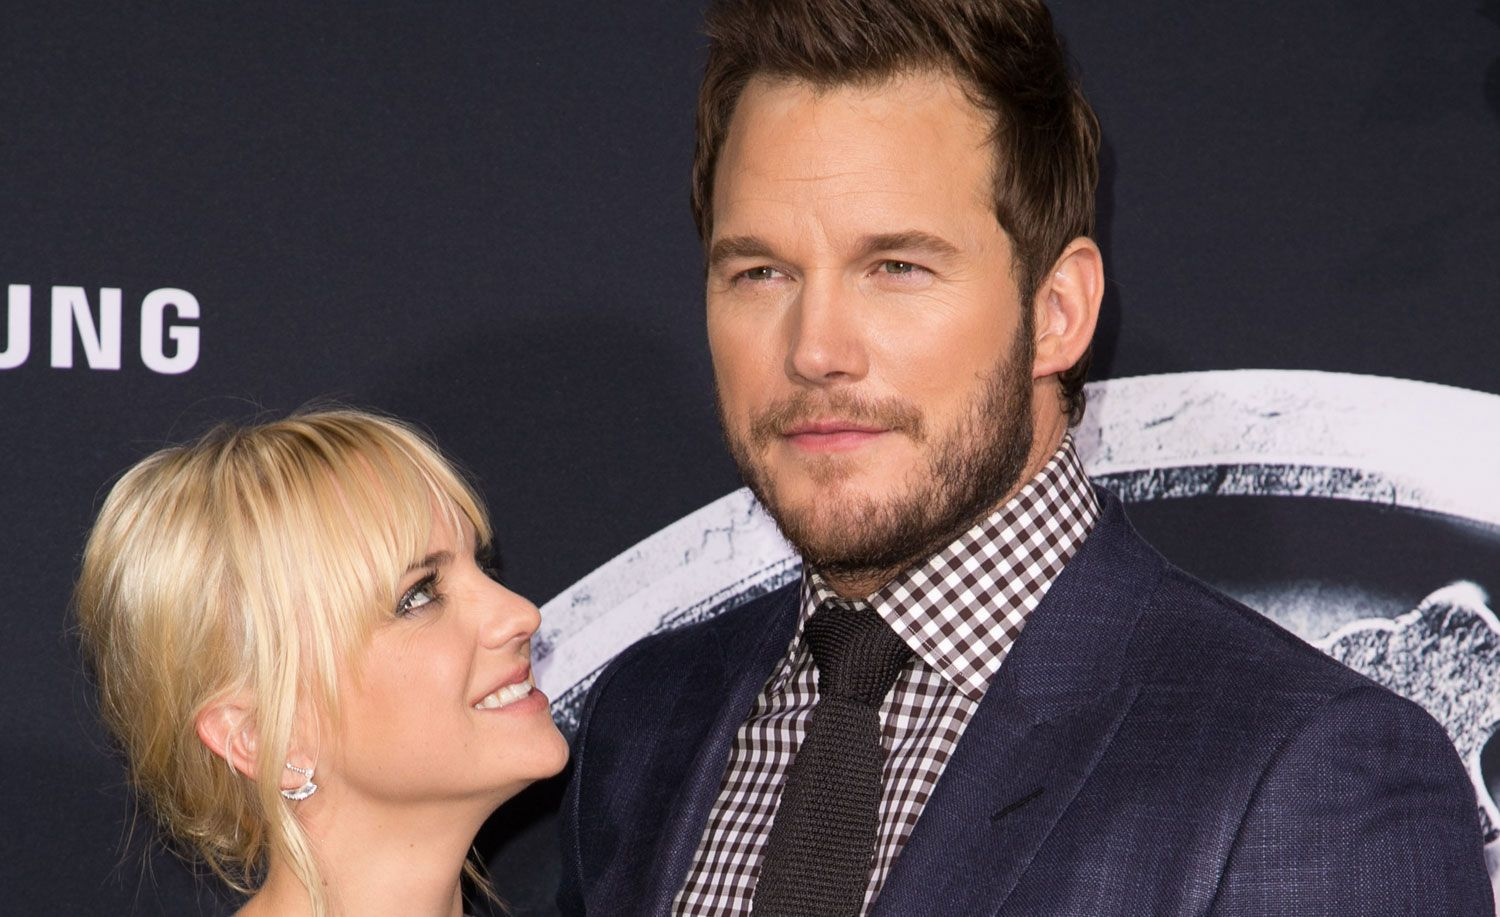 Anna Faris Says Rumors of Chris Pratt Cheating Made Her Feel 'Insecure' - Just Jared